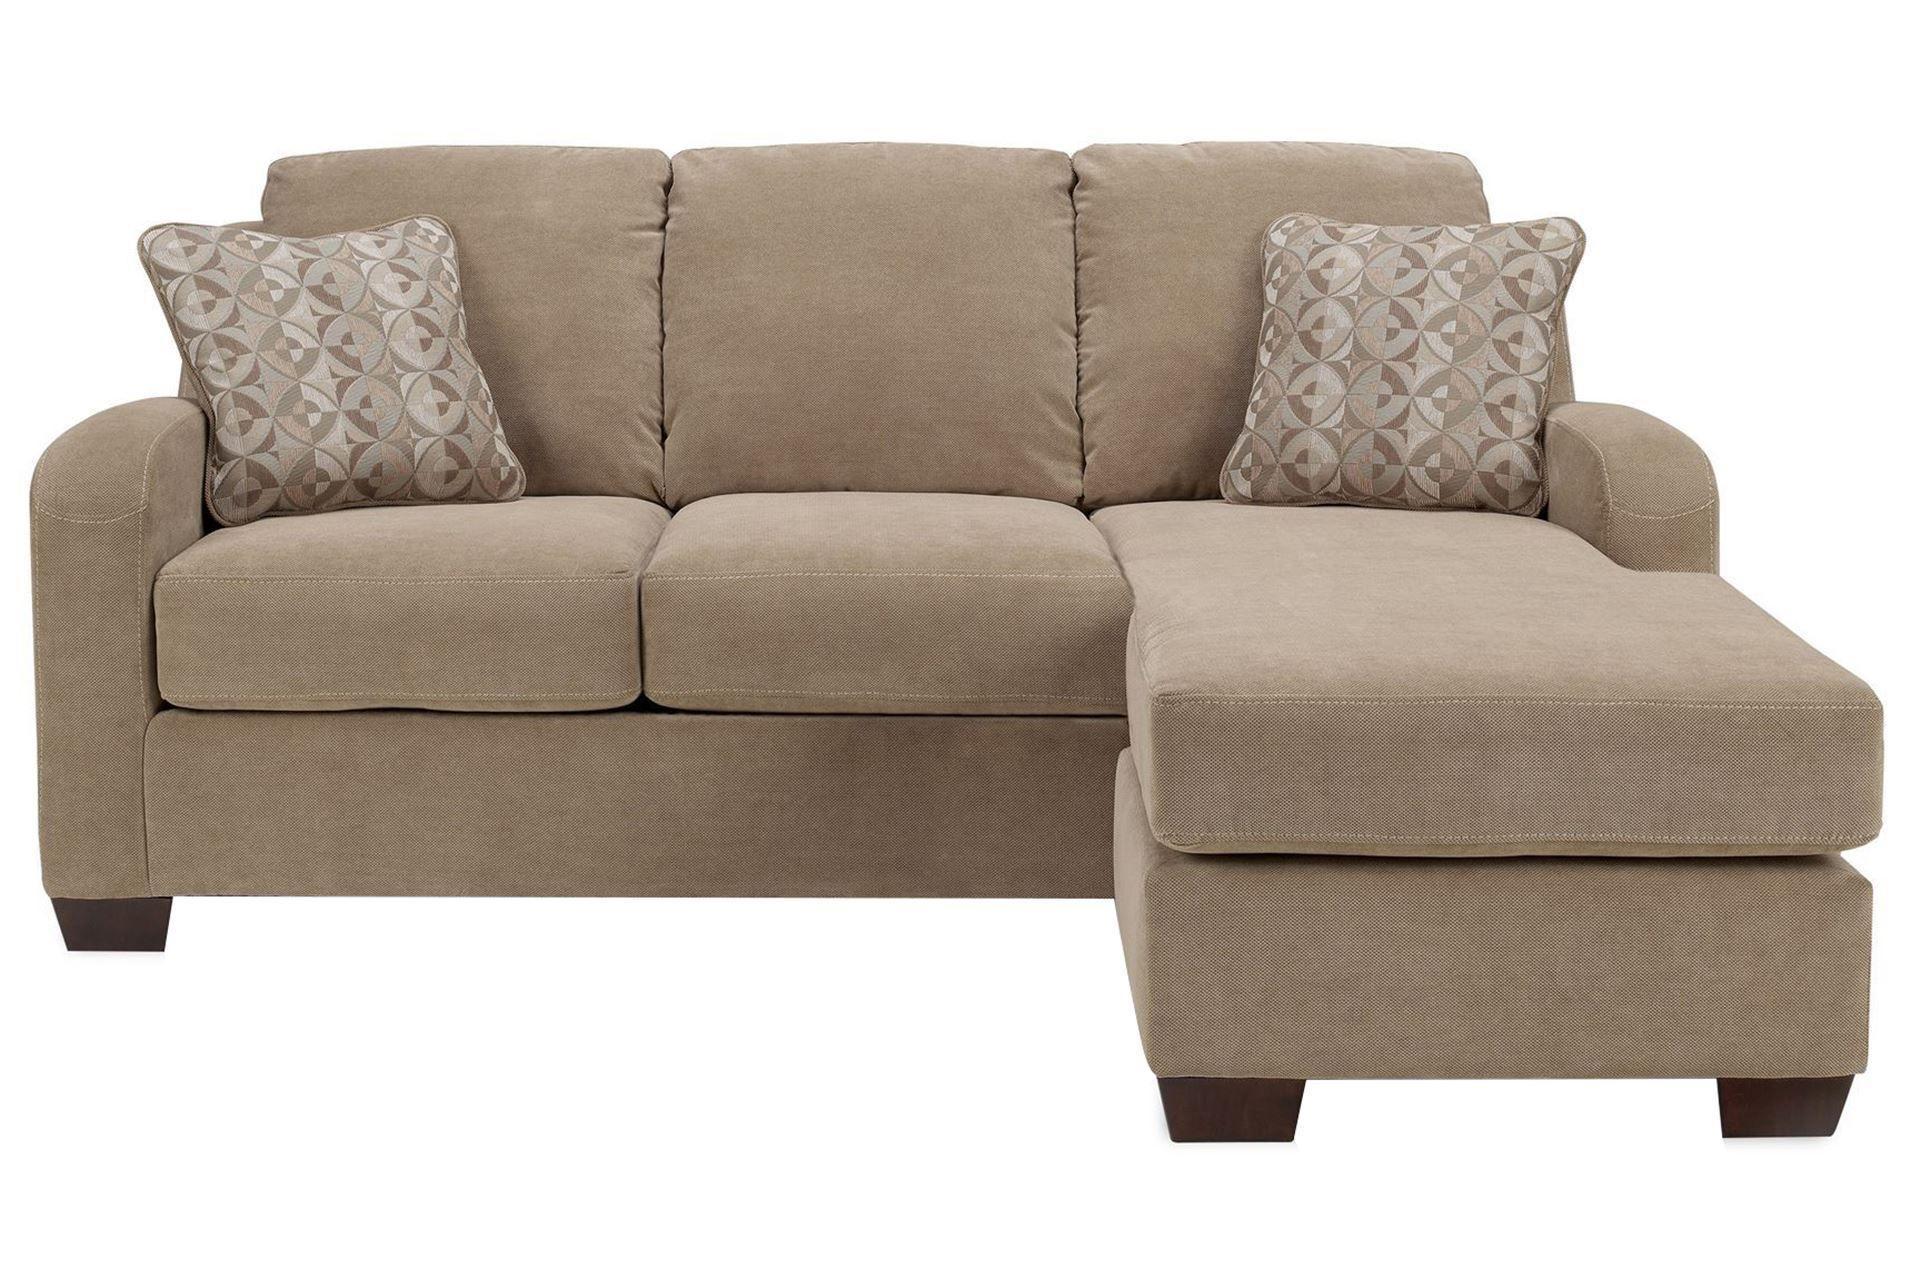 Circa Taupe Chaise Queen Sleeper - Signature  sc 1 st  Pinterest : taupe chaise lounge - Sectionals, Sofas & Couches